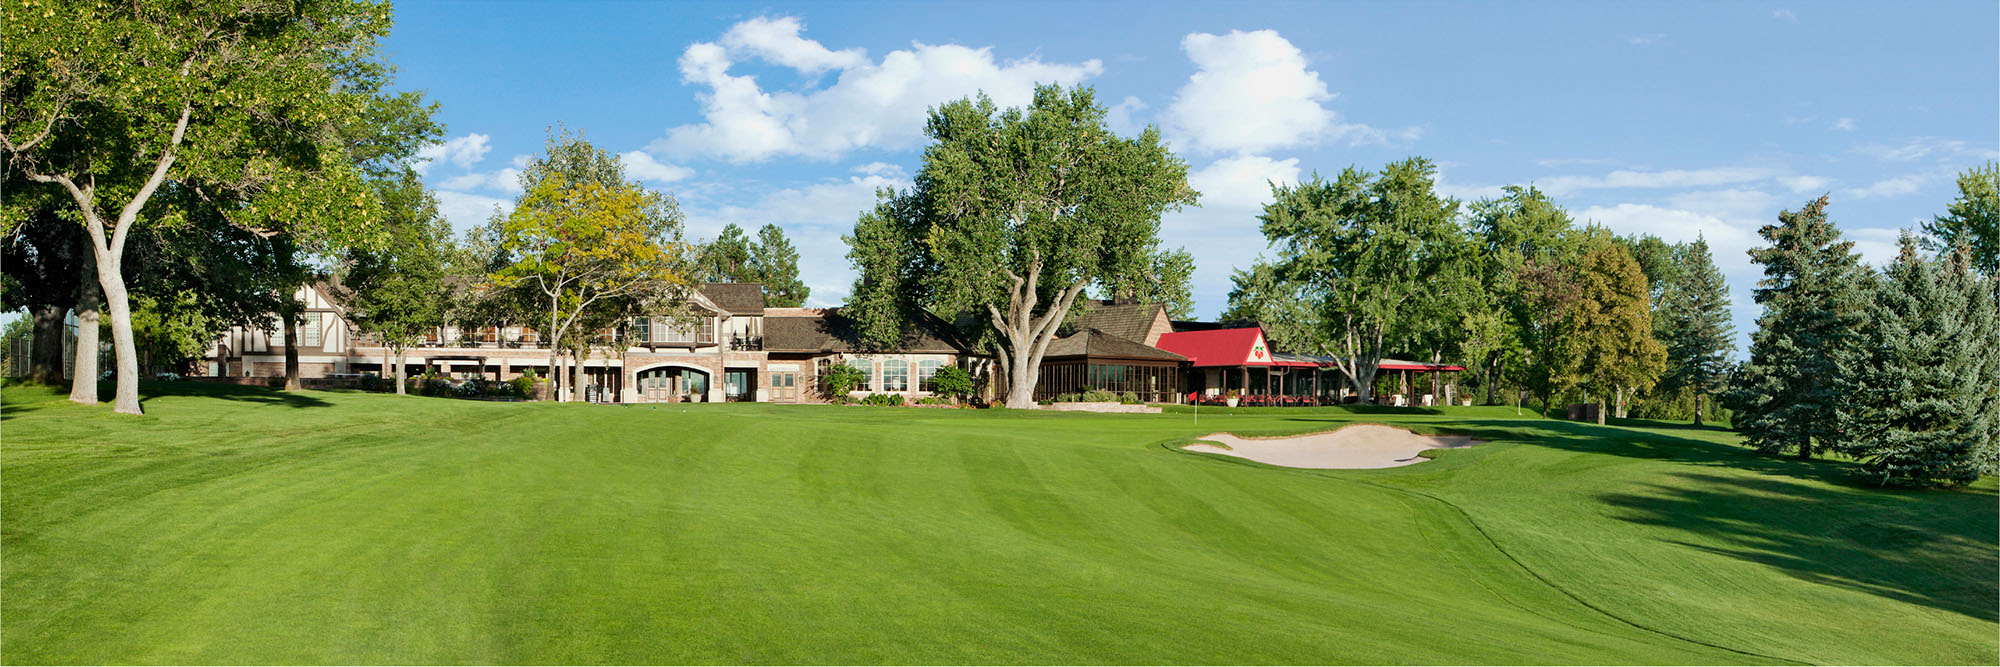 Golf Course Image - Cherry Hills Country Club No. 9